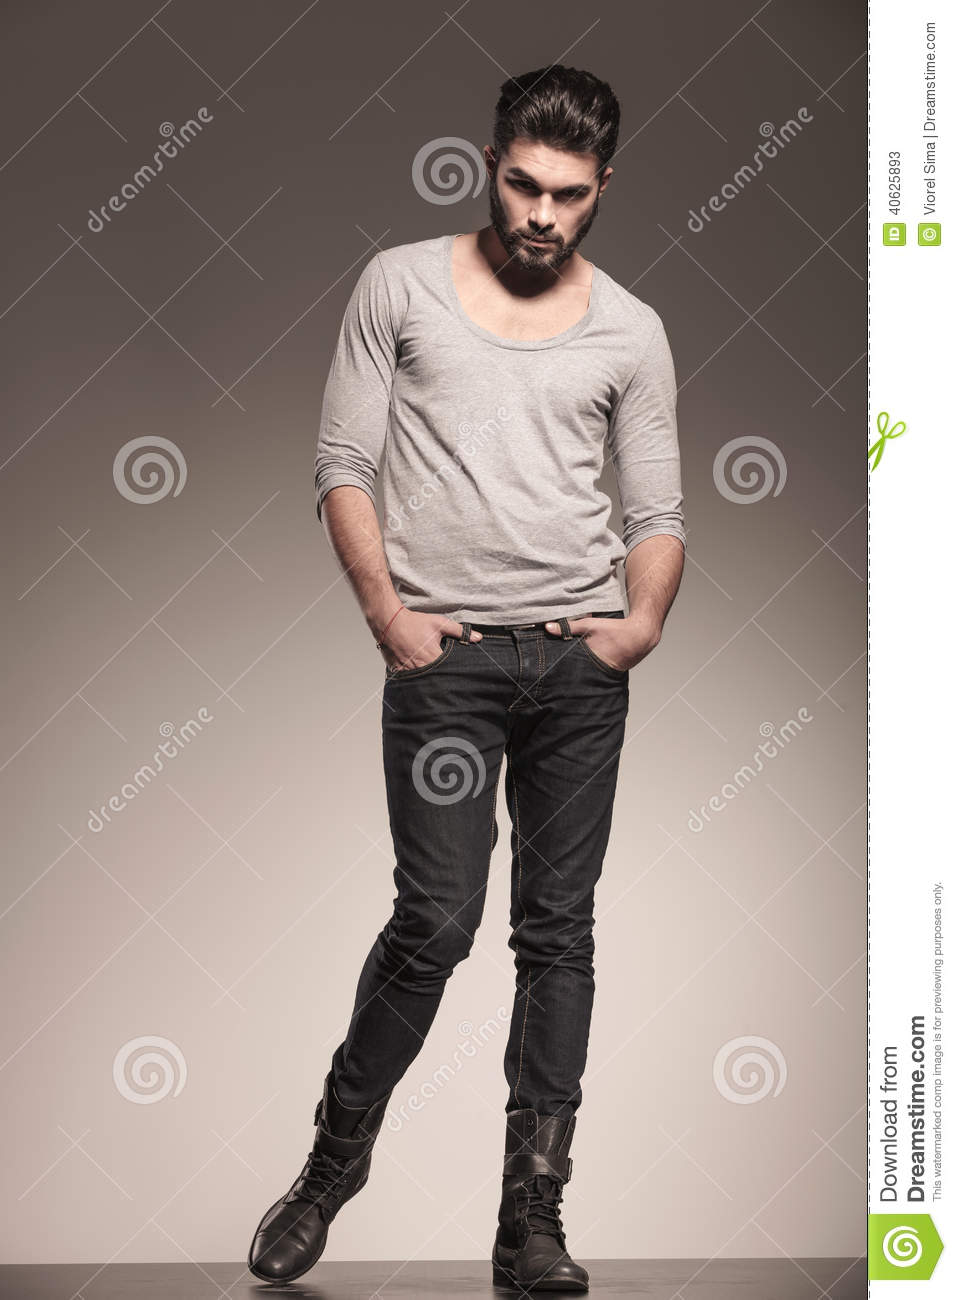 Fashion Model Posing With Hands In His Pockets Stock Photo Image 40625893